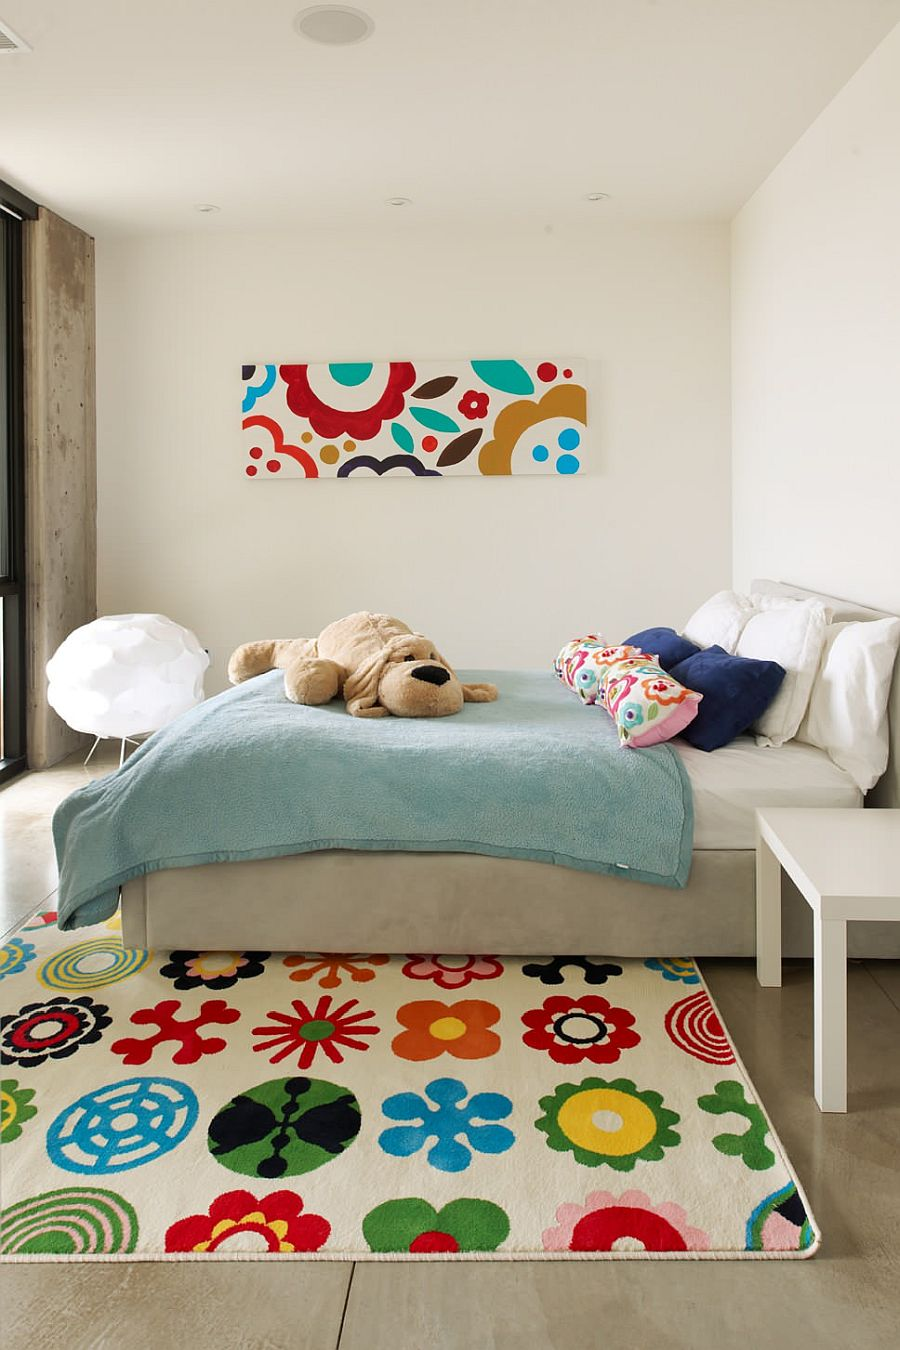 Rug, wall art piece and cushions bring bright floral pattern to this kids' room